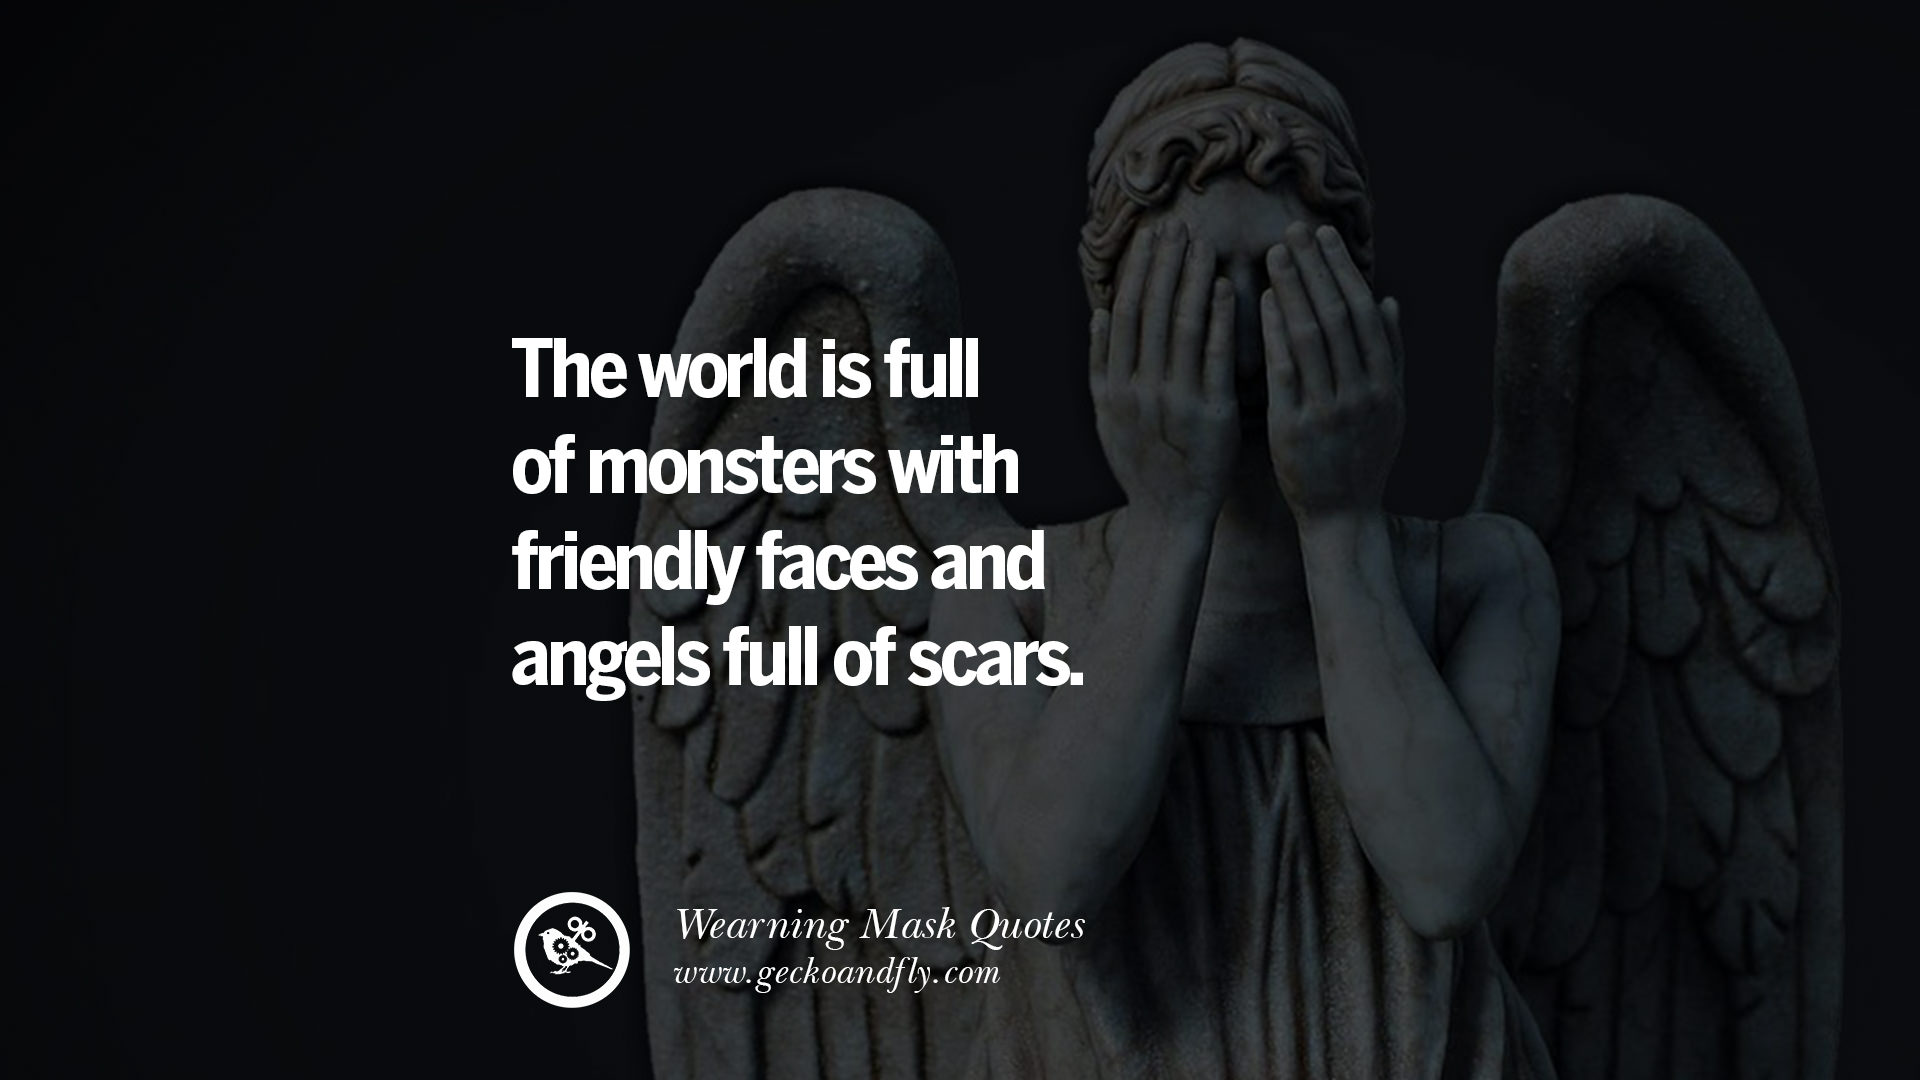 The world is full of monsters with friendly faces and angels full of scars